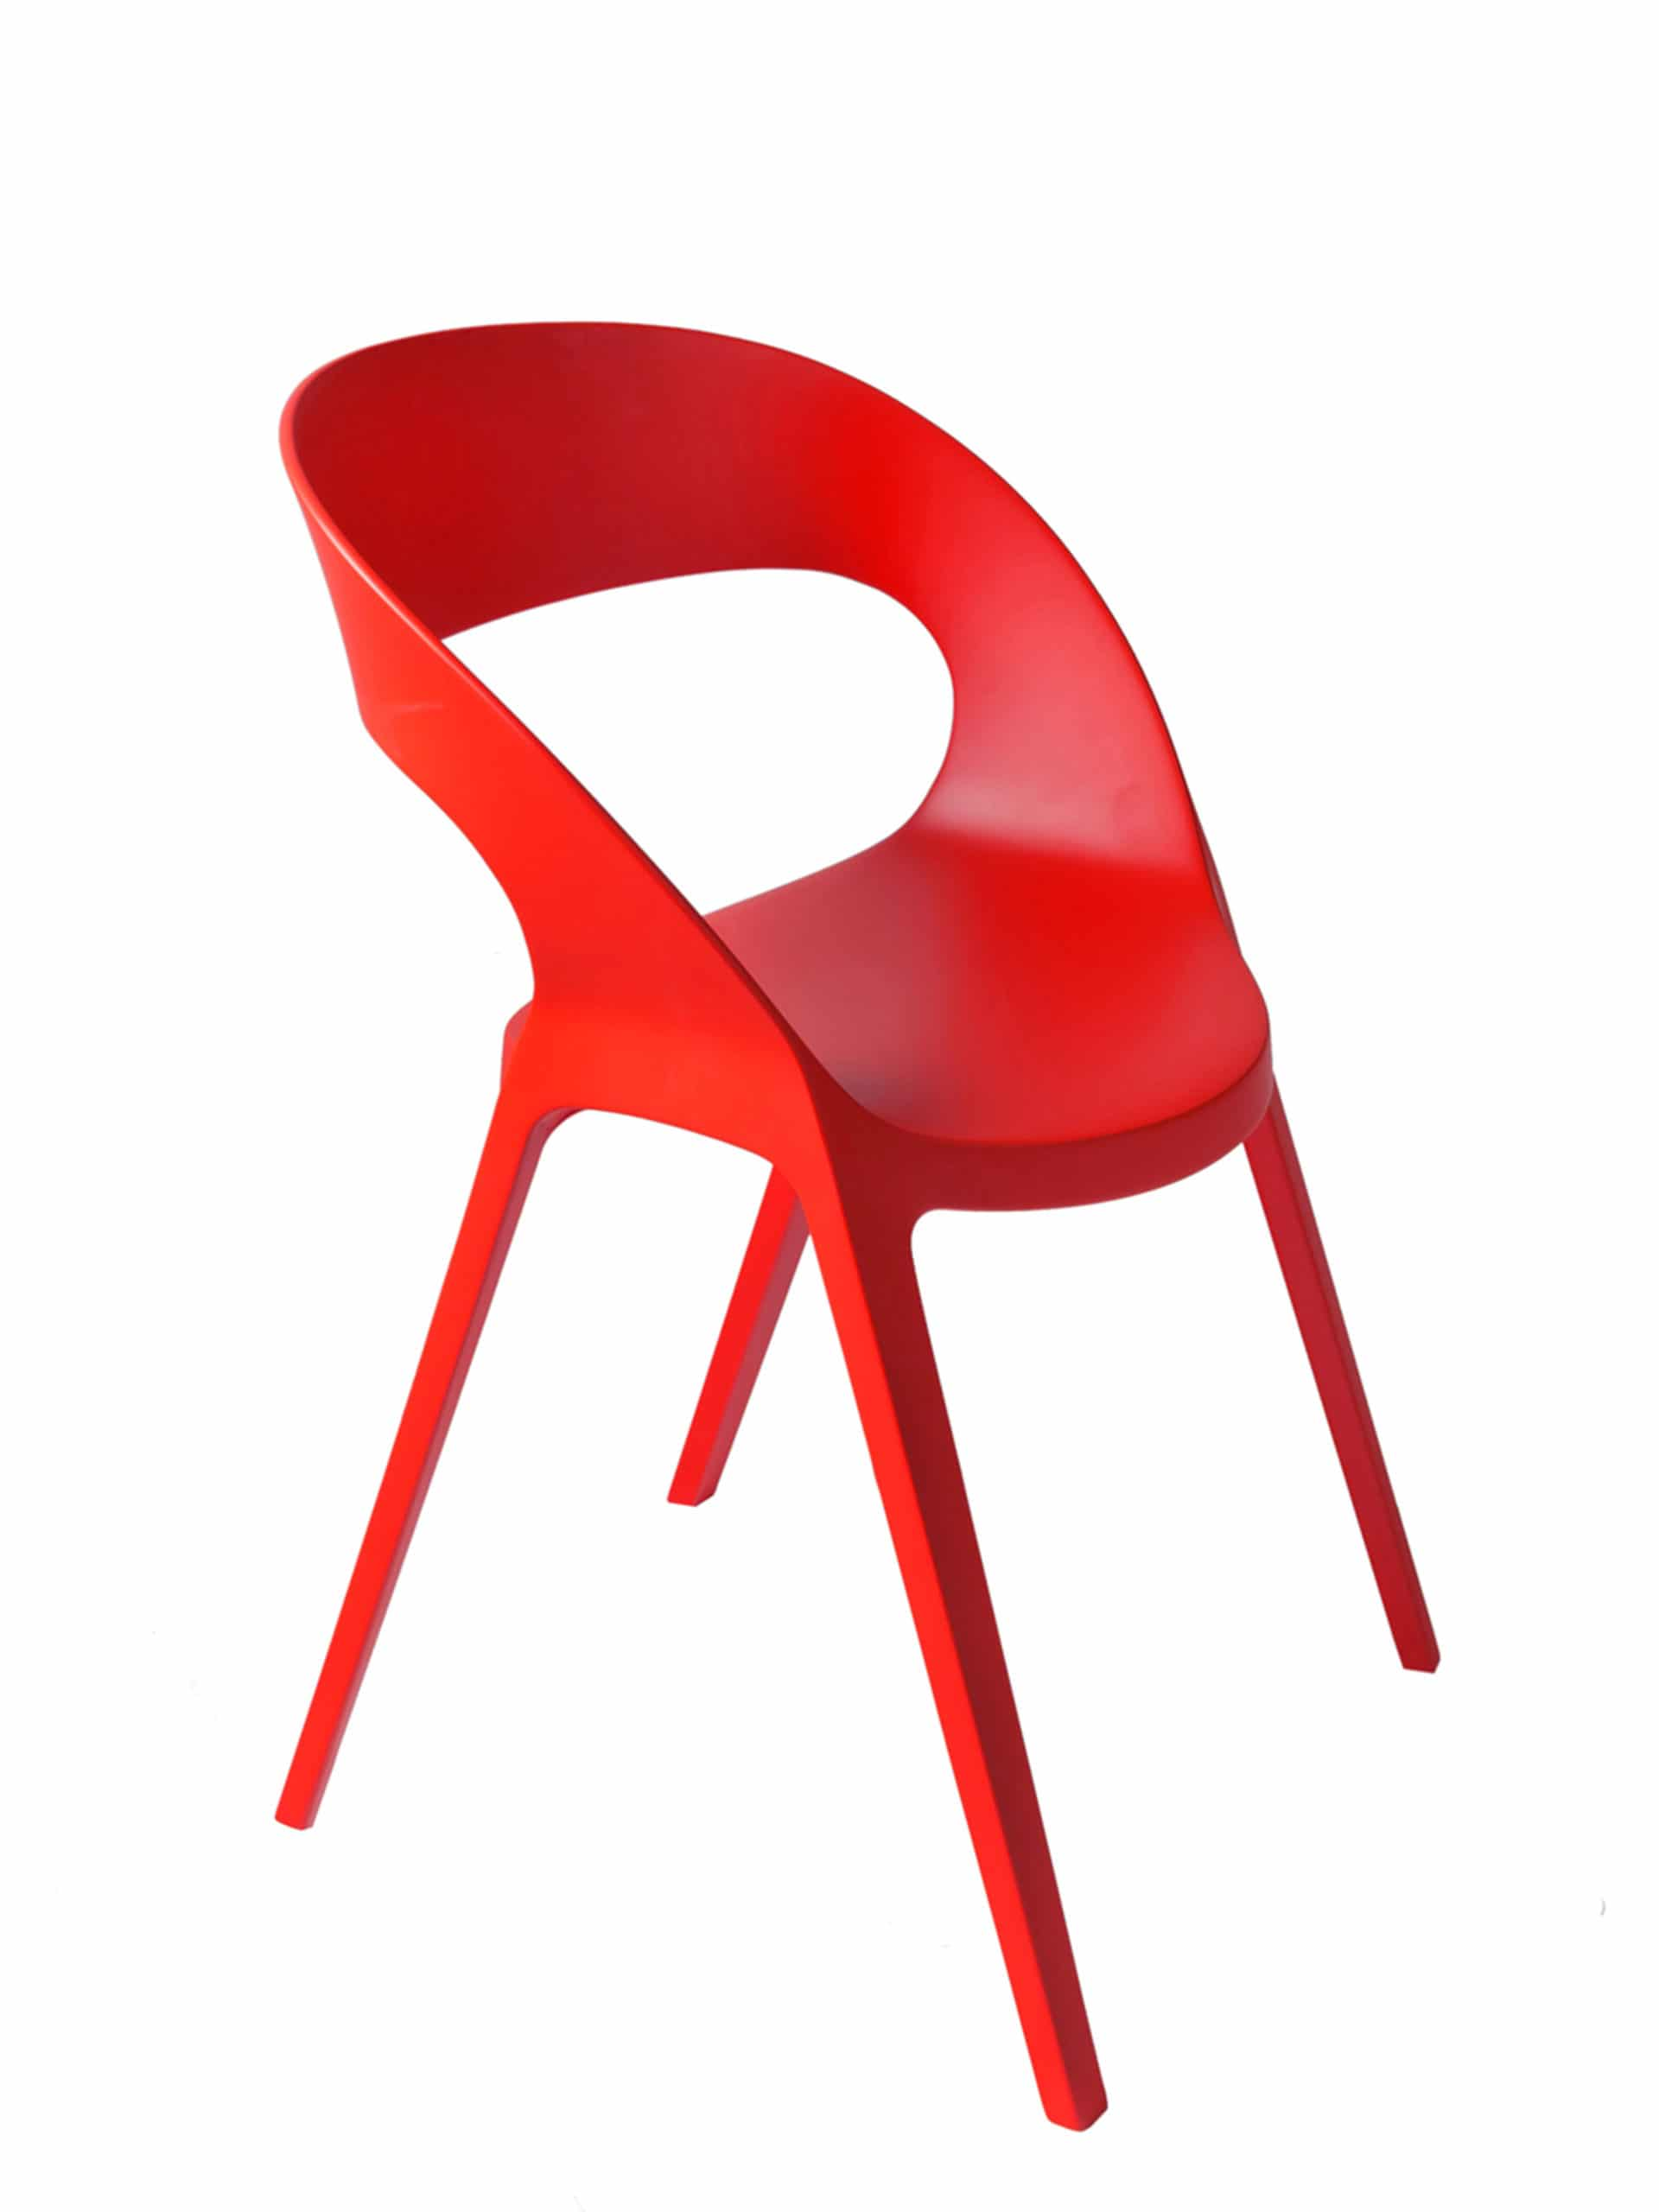 <p>Outdoor Furniture Contemporary Collection – Zapata Chair – Red.</p> <p> </p> <p>Chair designed for indoor and outdoor use available in a variety of colours, capturing essential features such as lightness, stability, functionality, ergonomics and care for the environment. Comfort, Modernity, style and durability</p>